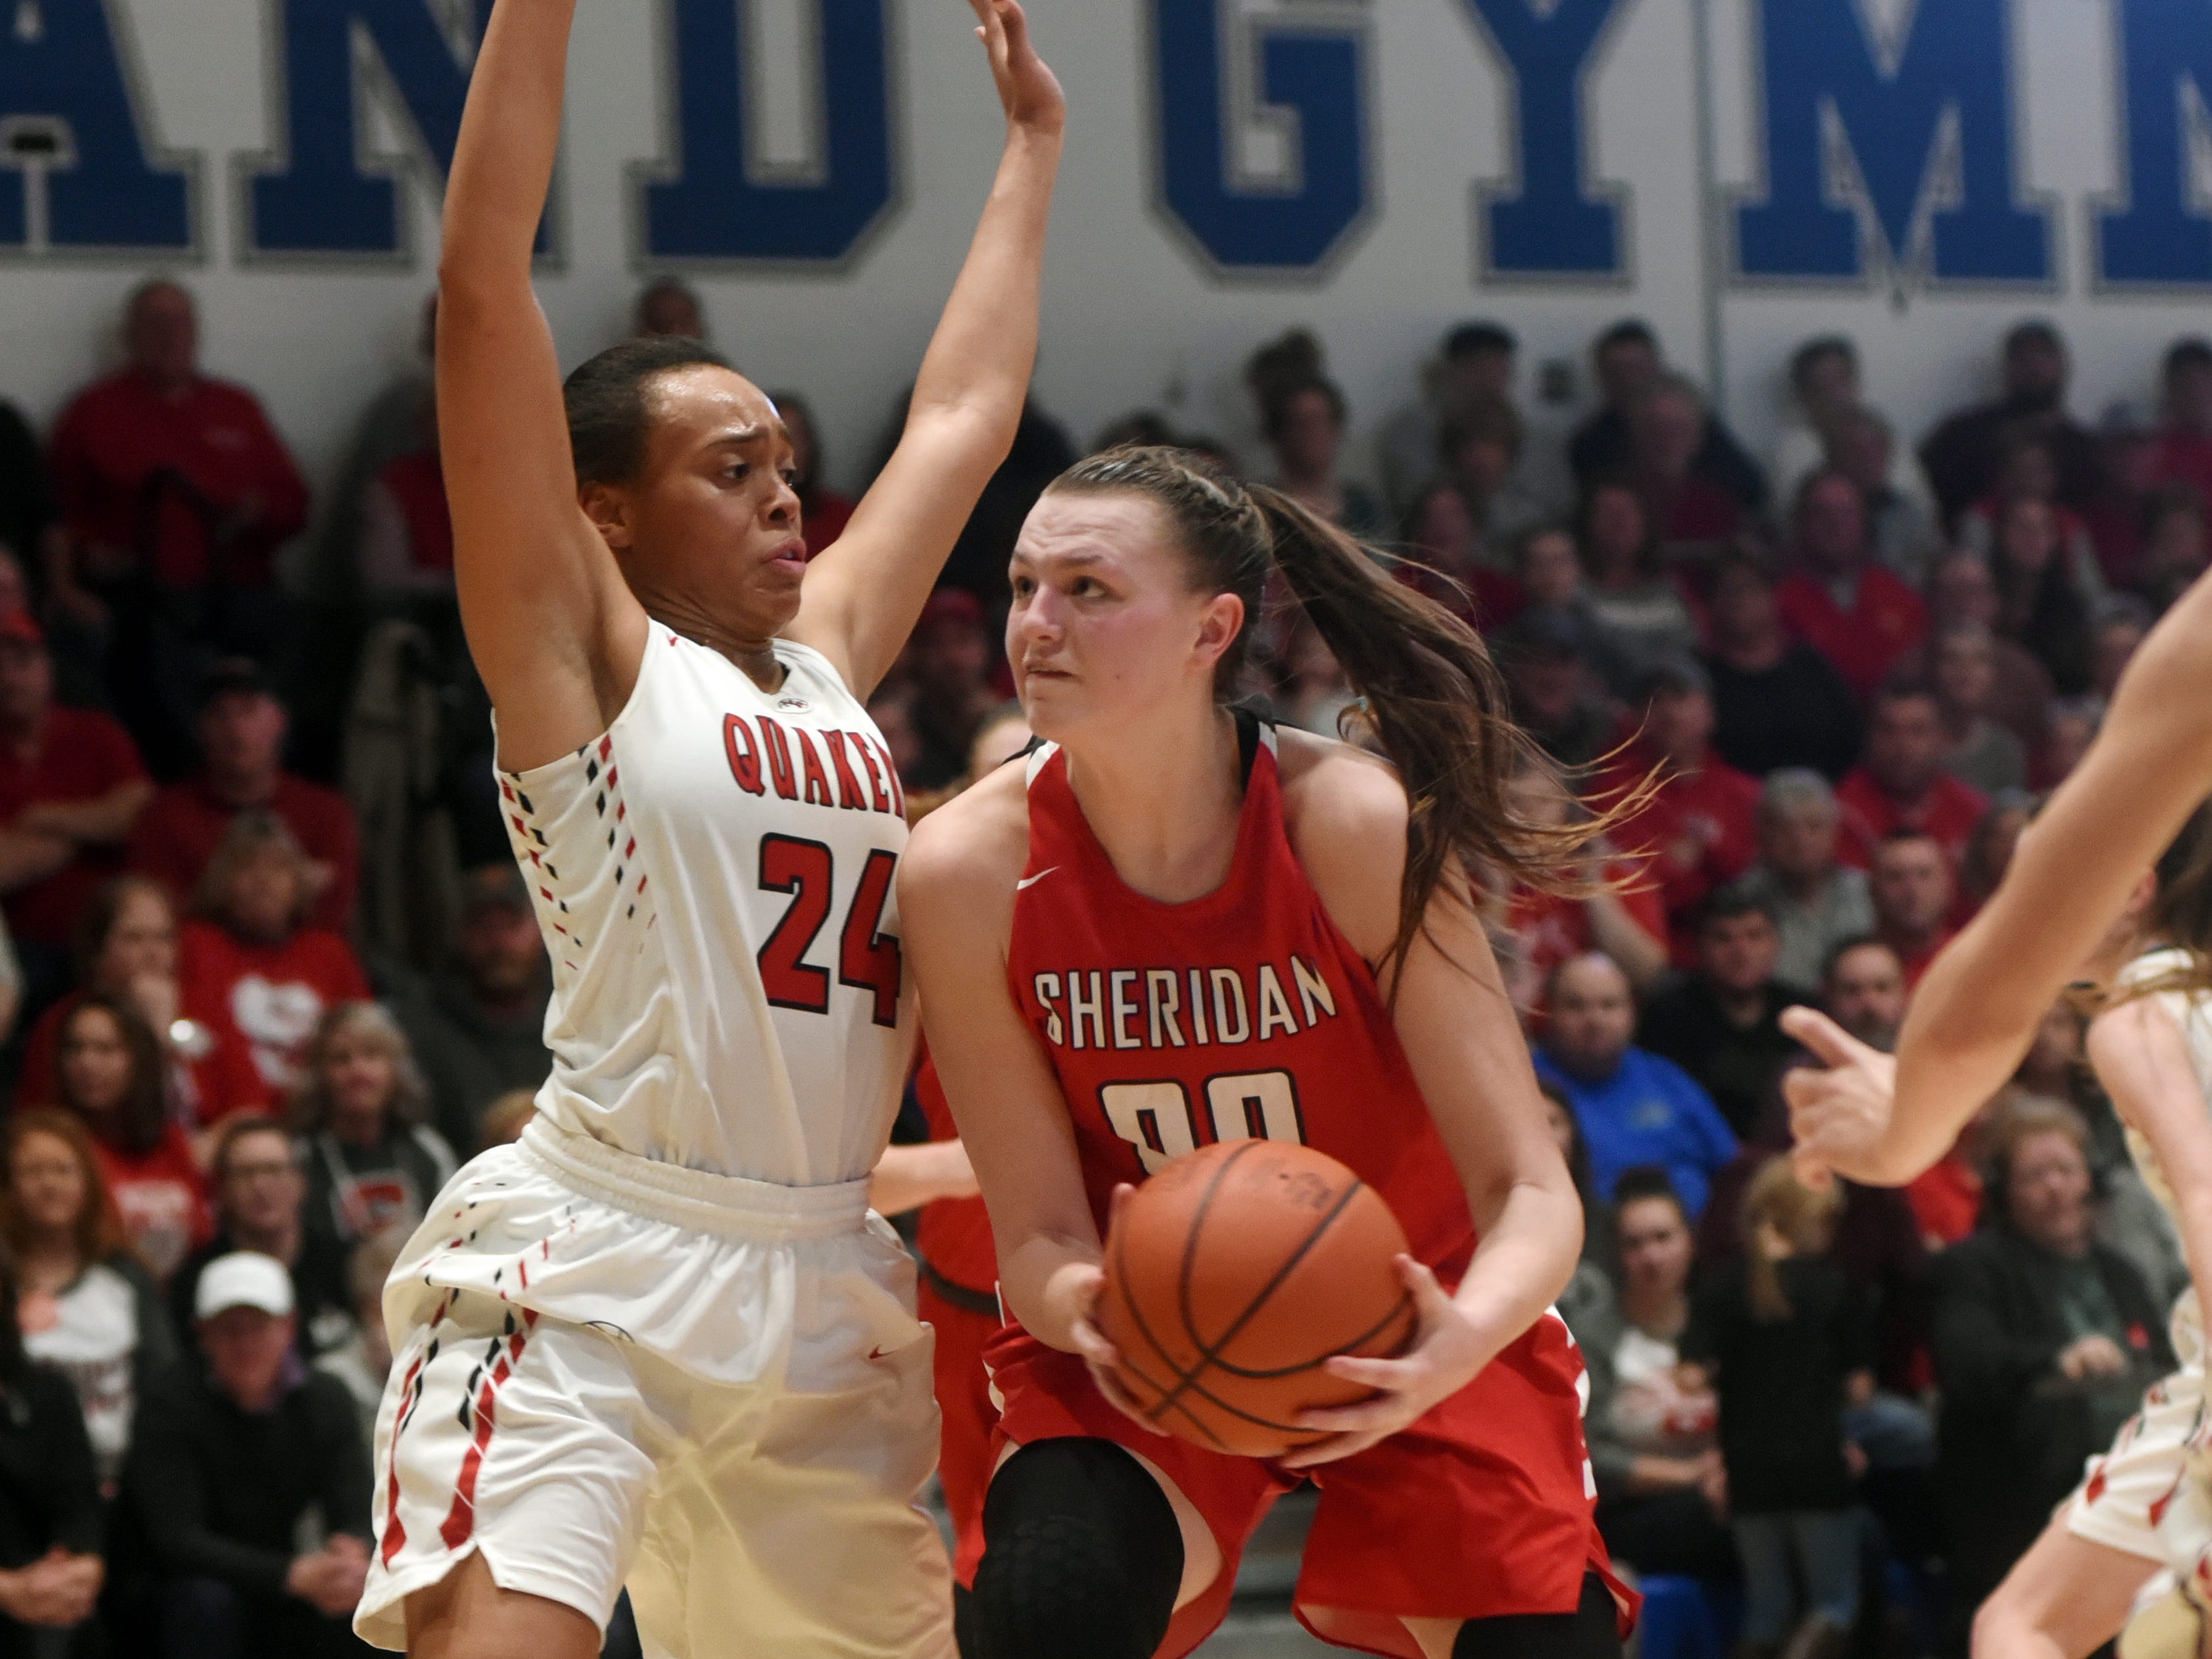 Faith Stinson, of Sheridan, prepares to take a shot in the lane against New Philadelphia's Aaliyah Currence during a Division II regional final at Winland Memorial Gymnasium. The Generals reached their first state tournament since 2004 with a 48-46 win.